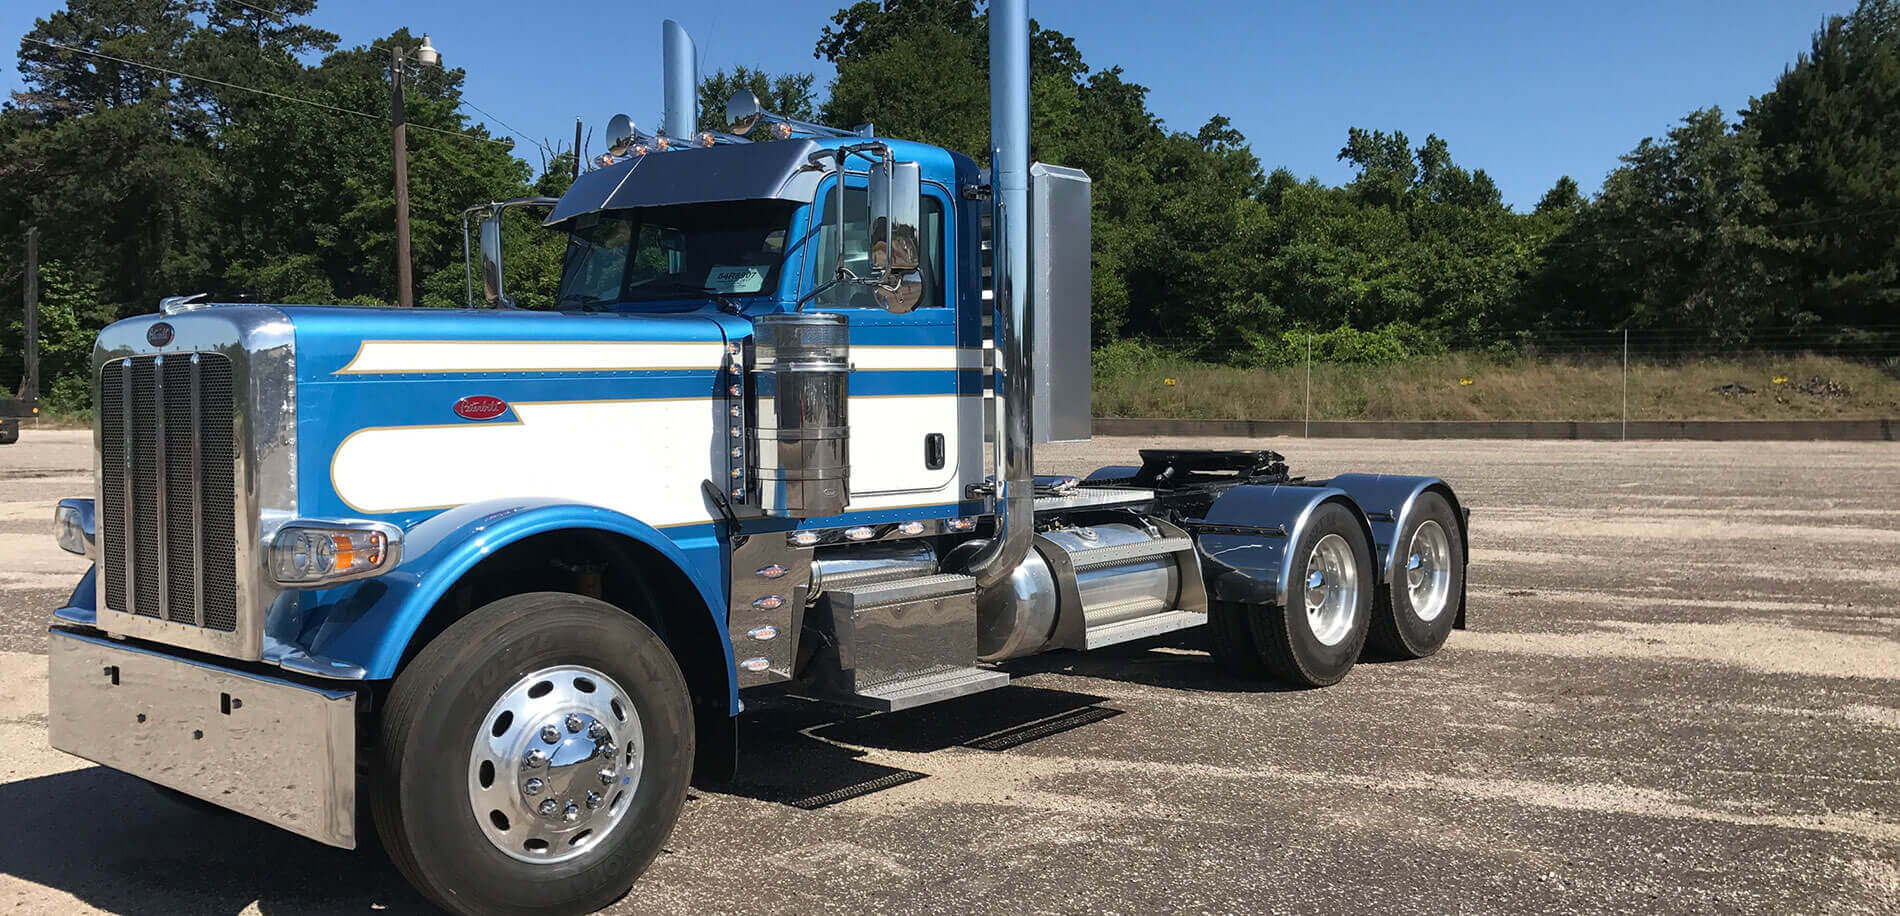 East Texas Truck Center Truck Trailer Repair Nacogdoches Tx Baytown Tx Your 1 Source For Trucks Trailers Parts And Service